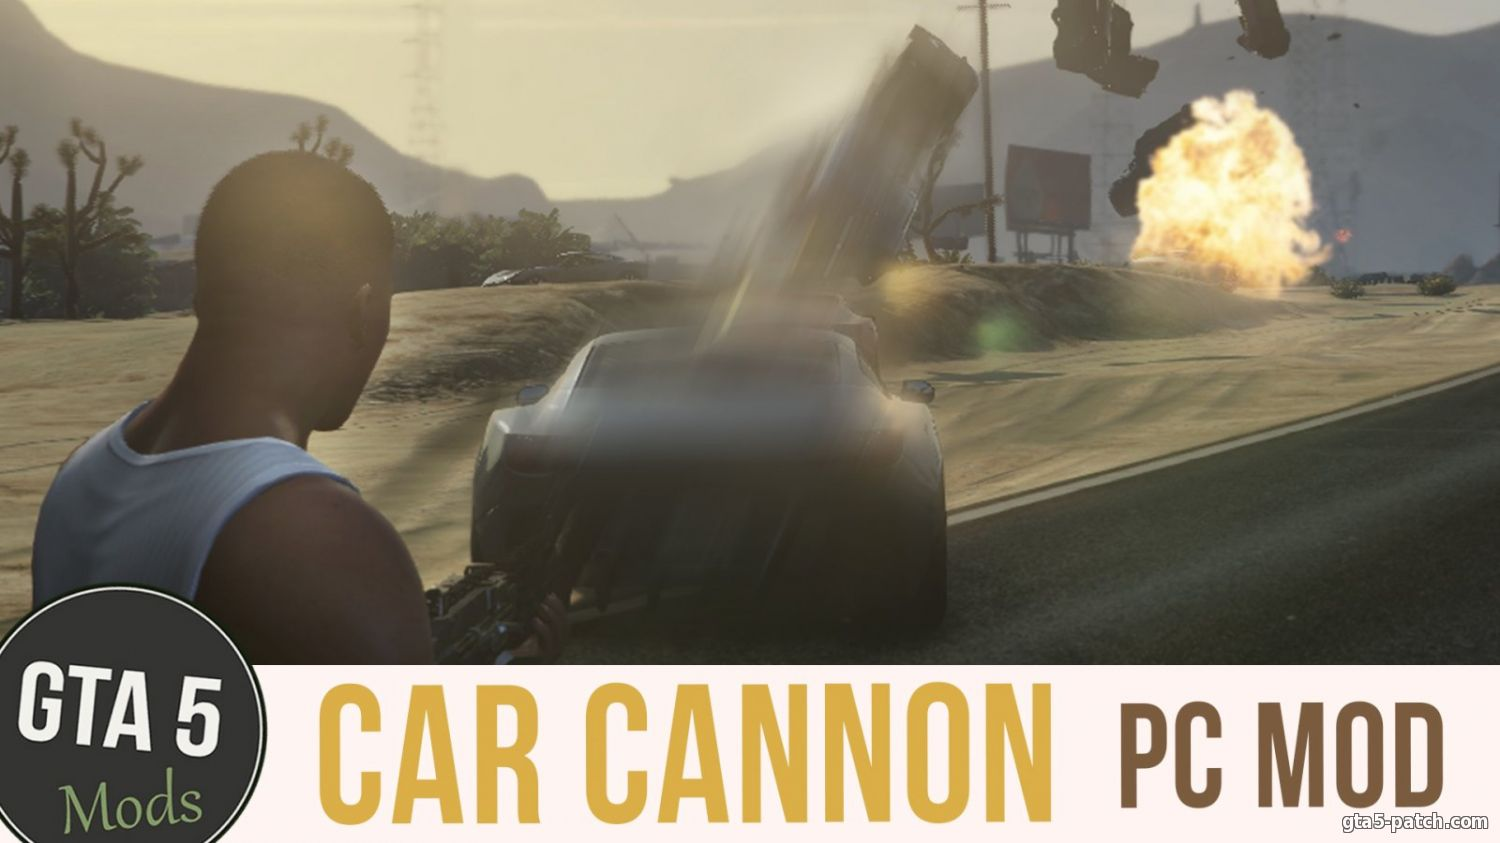 Vehicle Cannon Mod 1.0